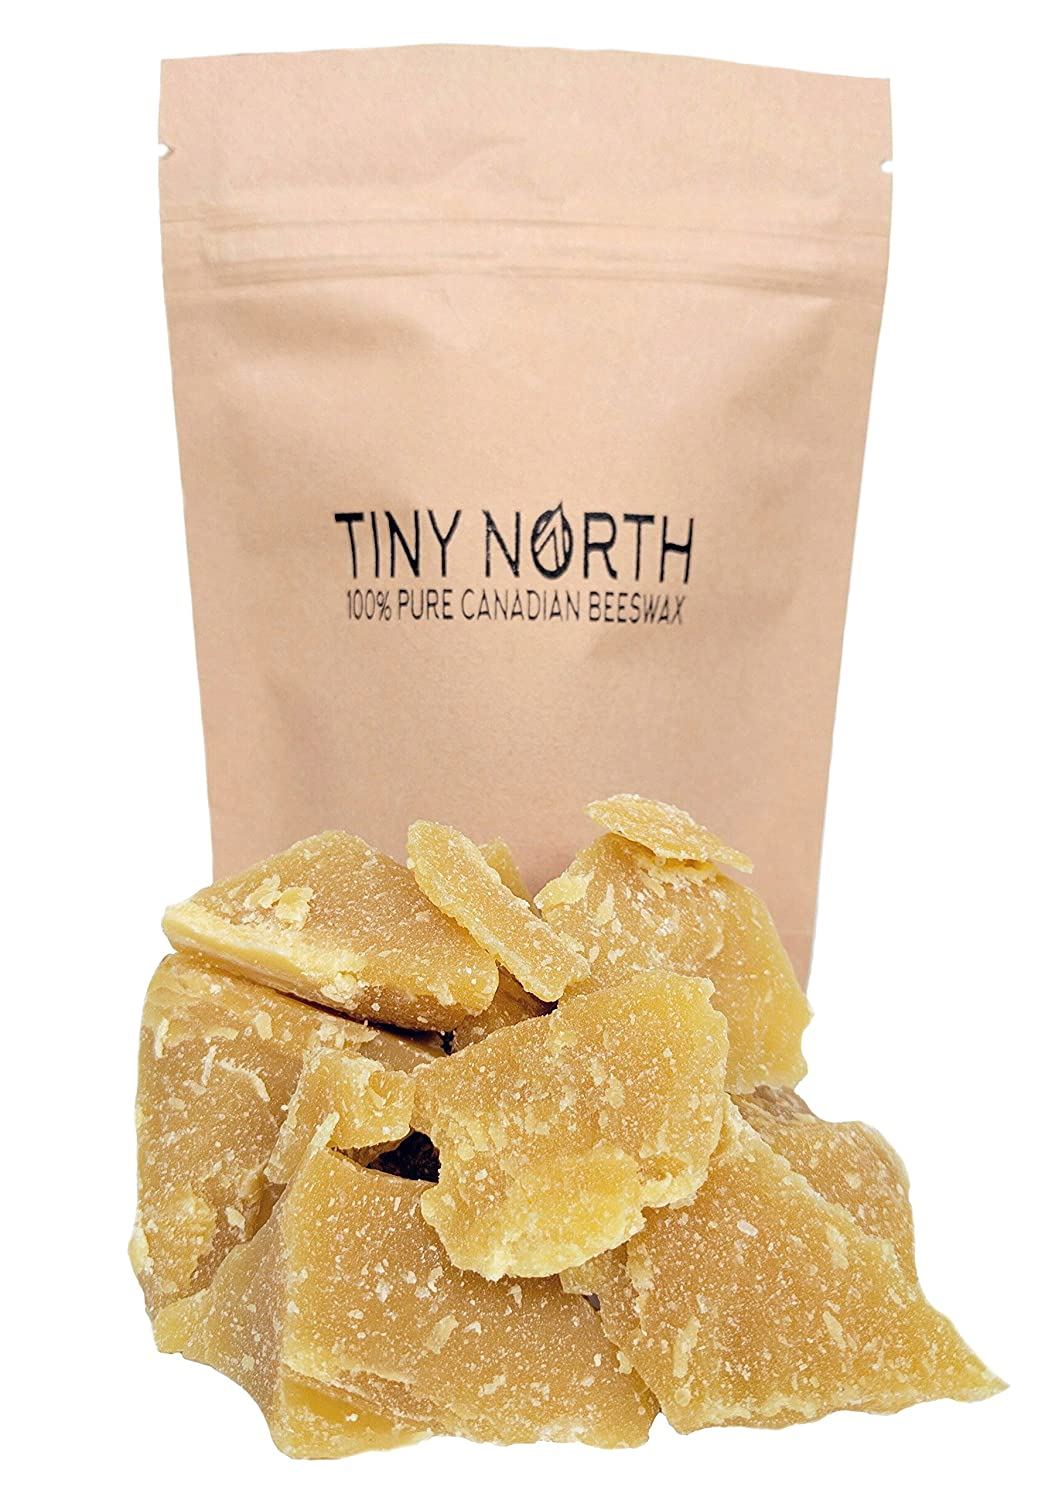 100% Pure Canadian Beeswax - Cosmetic Grade - Filtered to 1 Micron - All Natural Chunks - Yellow - 100 g (3.5 oz) Tiny North